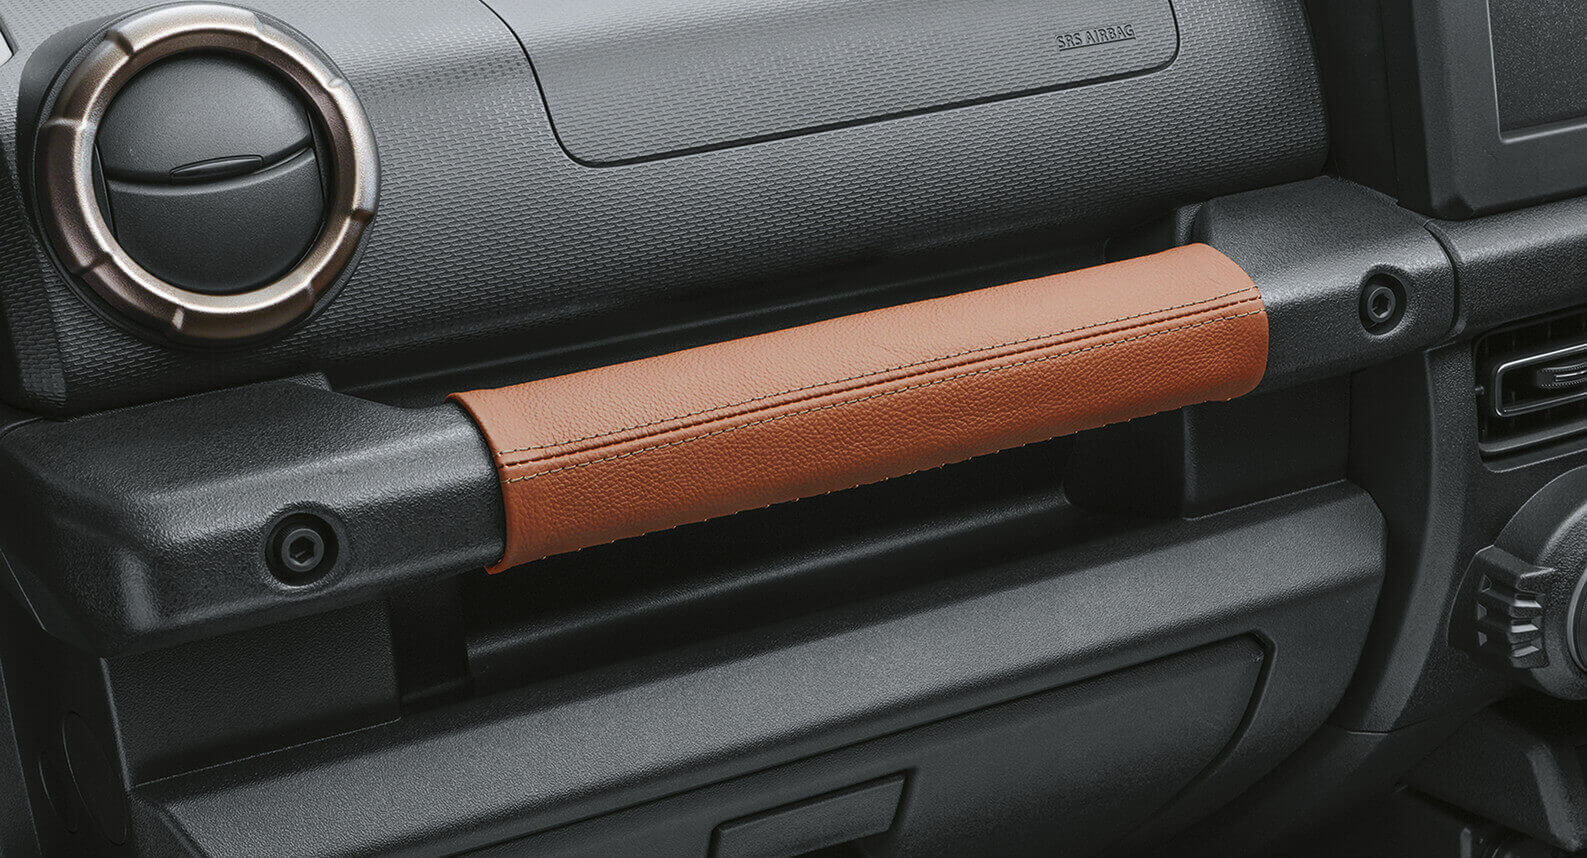 Jimny - Cover, Assistant Grip, Brown With Silver Stitching